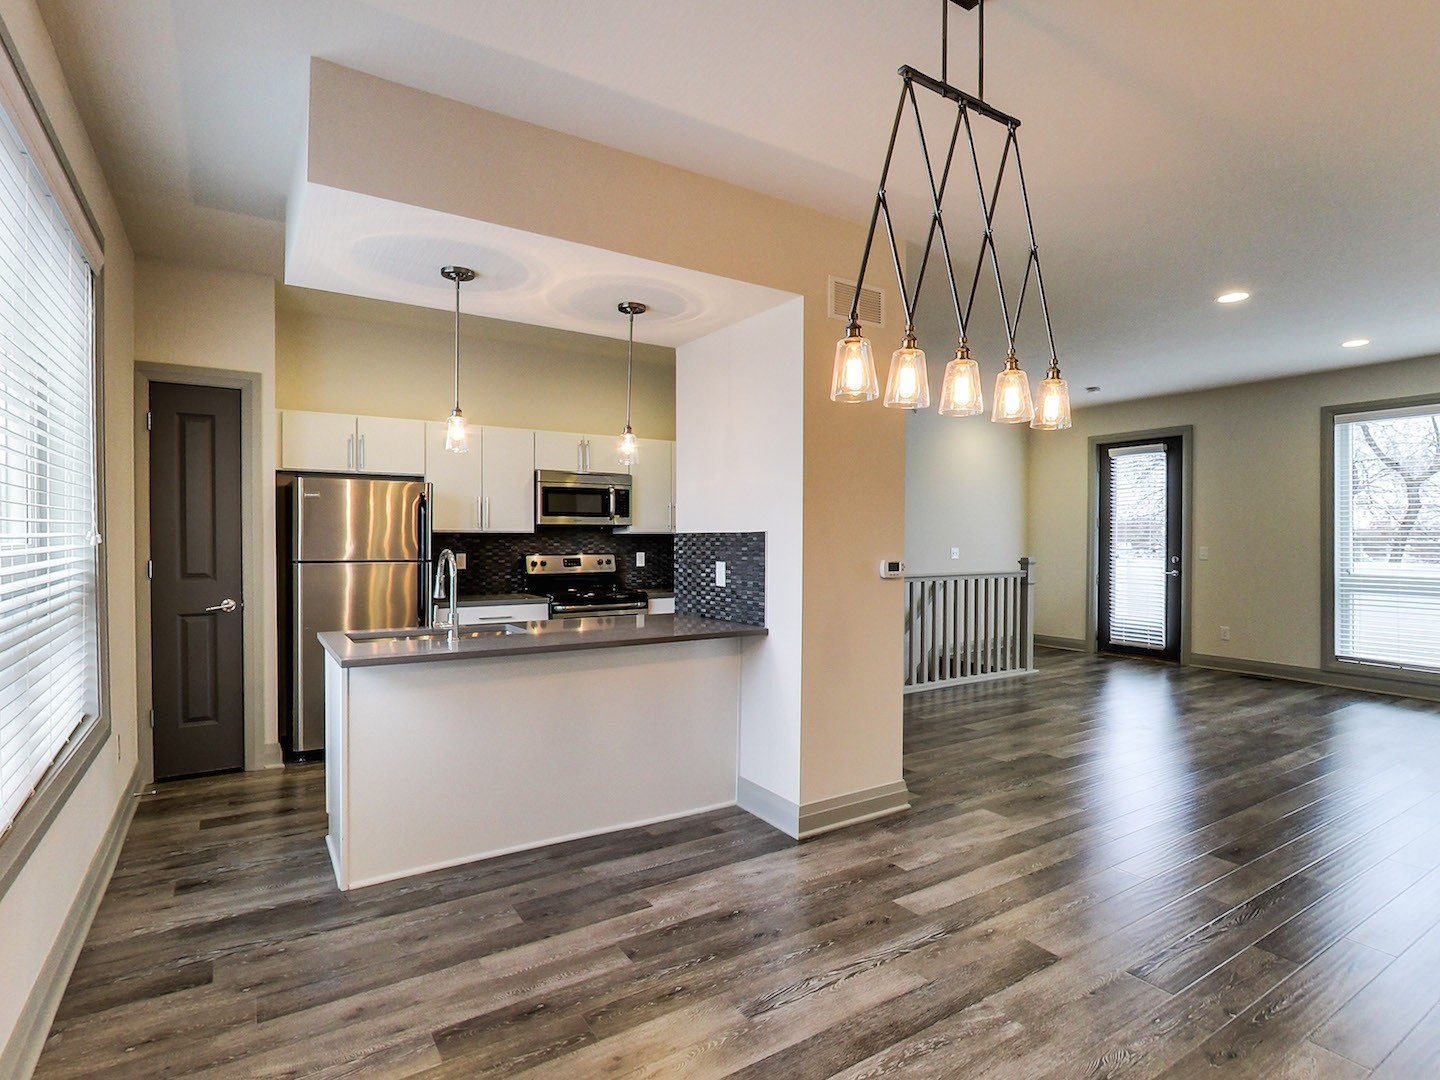 Rental Pick of the Week: Brand New One Bedroom In The Heart of Columbus